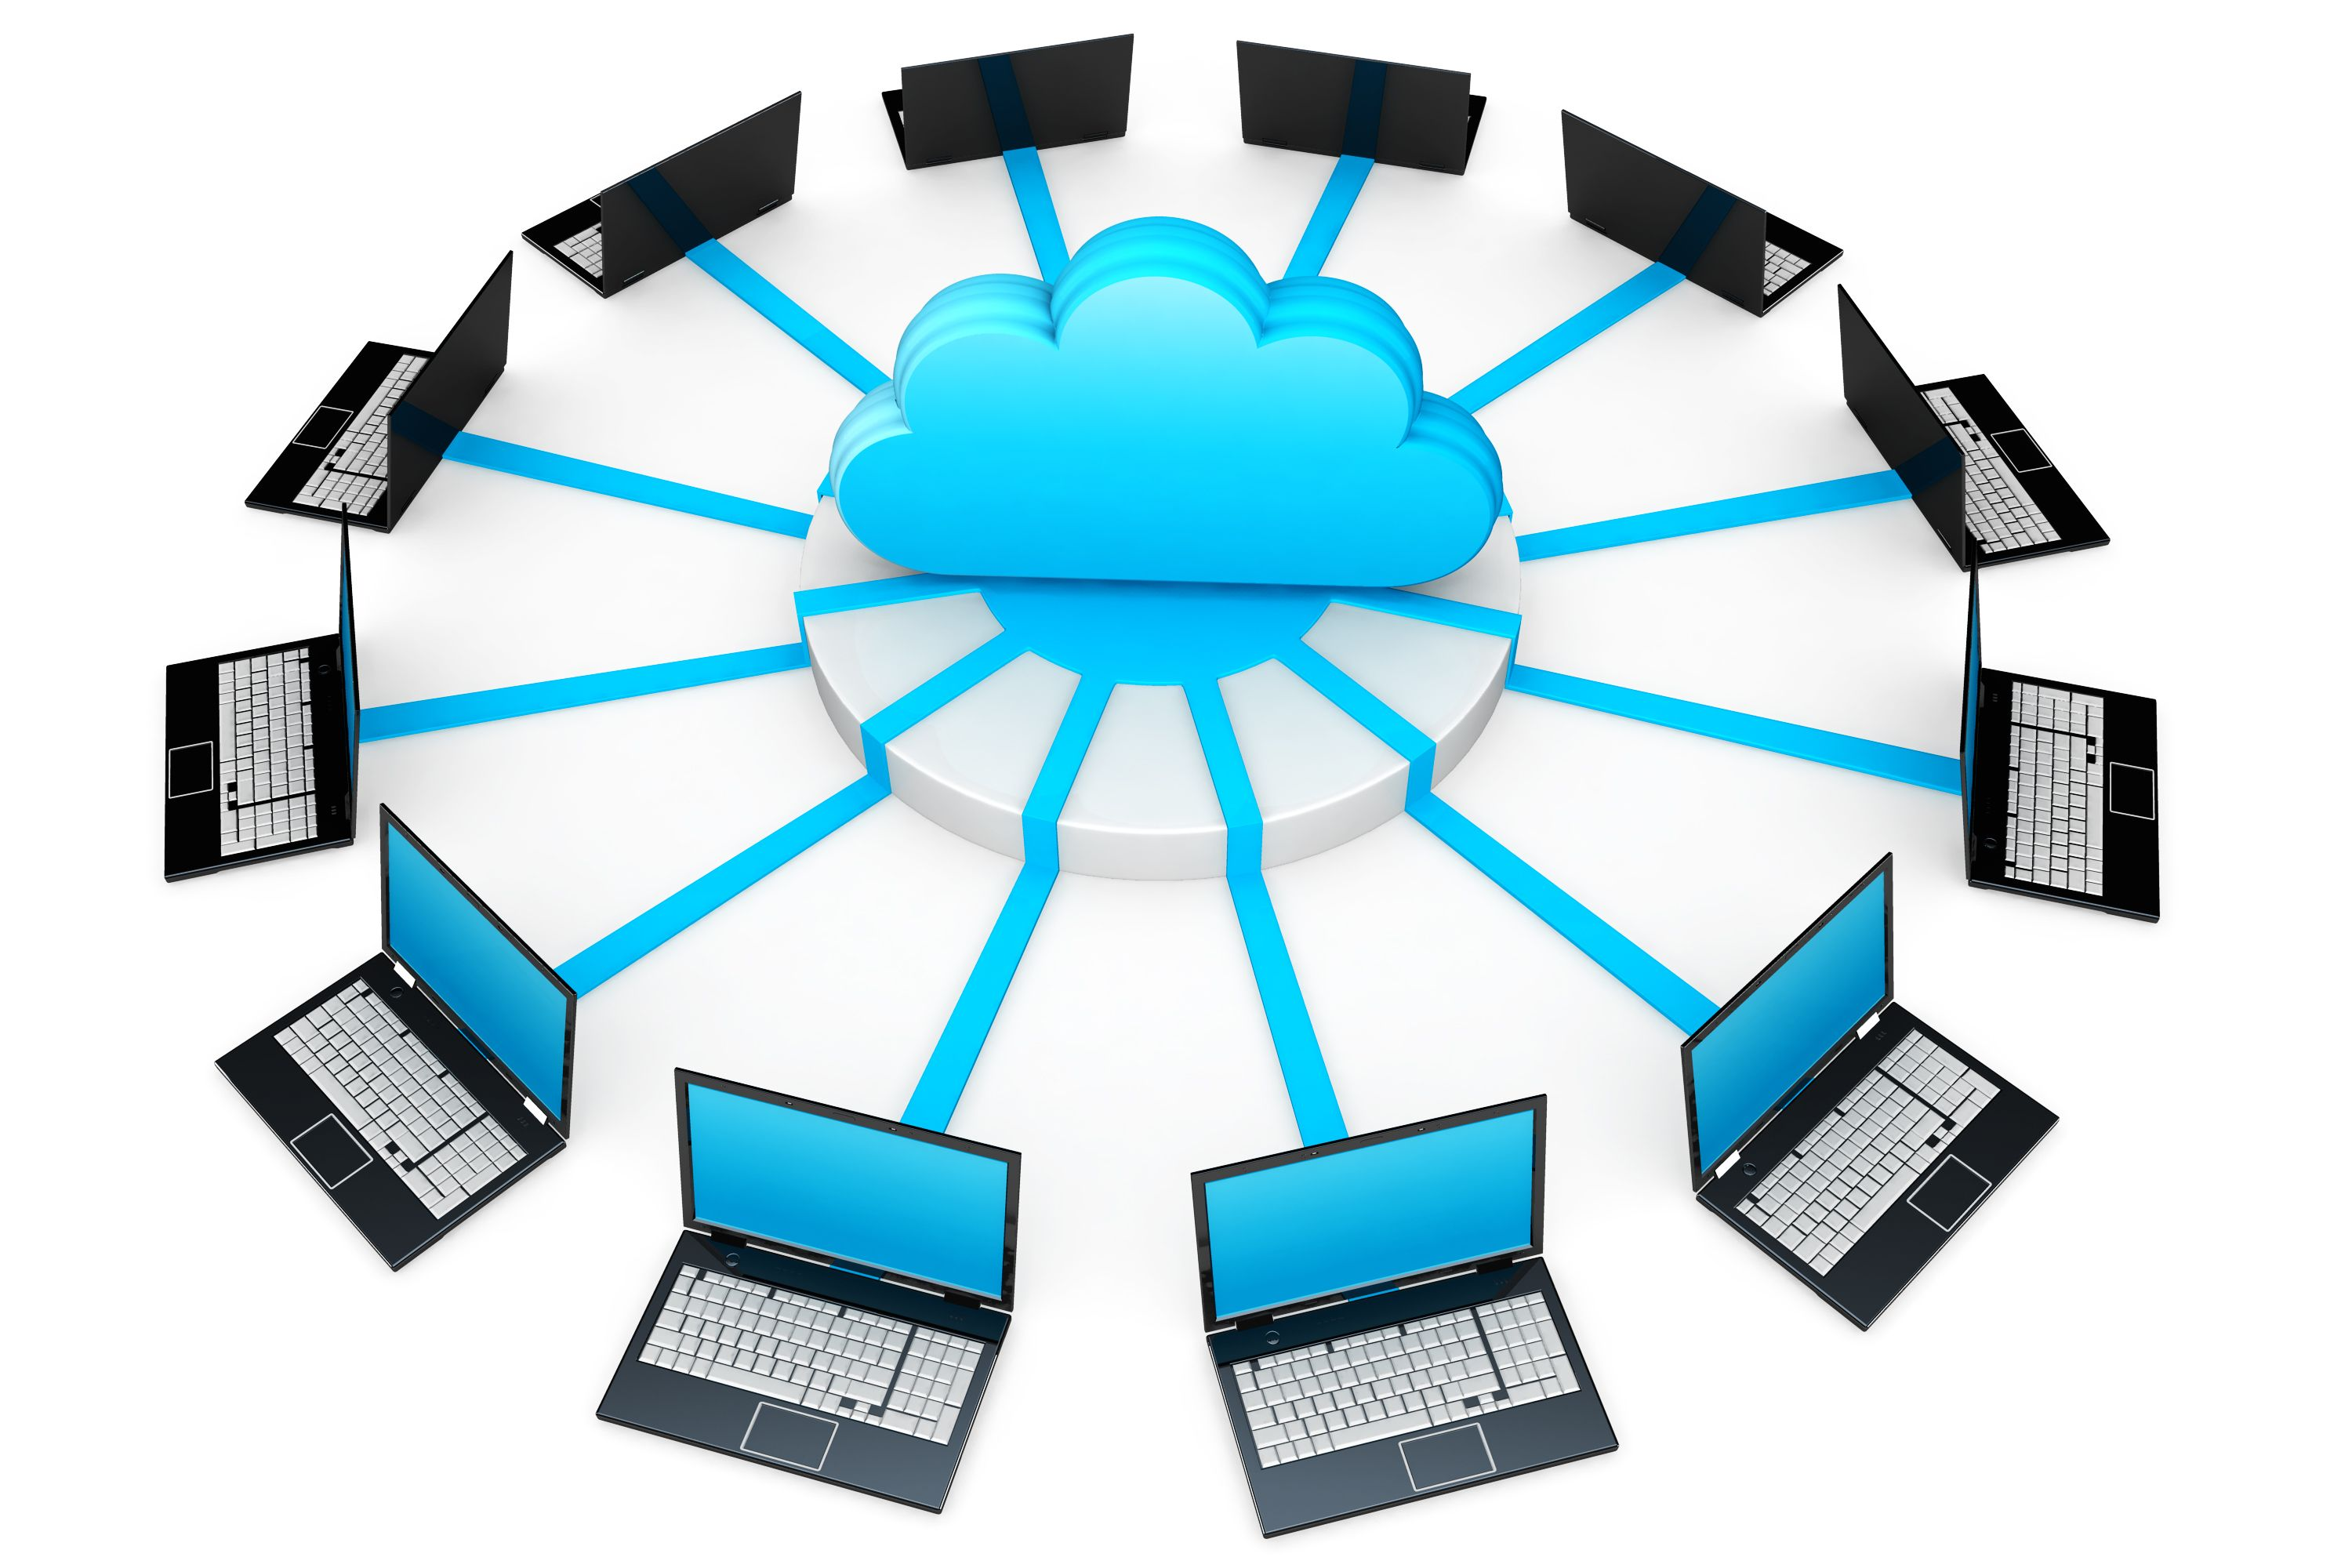 0914_network_of_laptops_connected_around_cloud_for_cloud_computing_stock_photo_Slide01